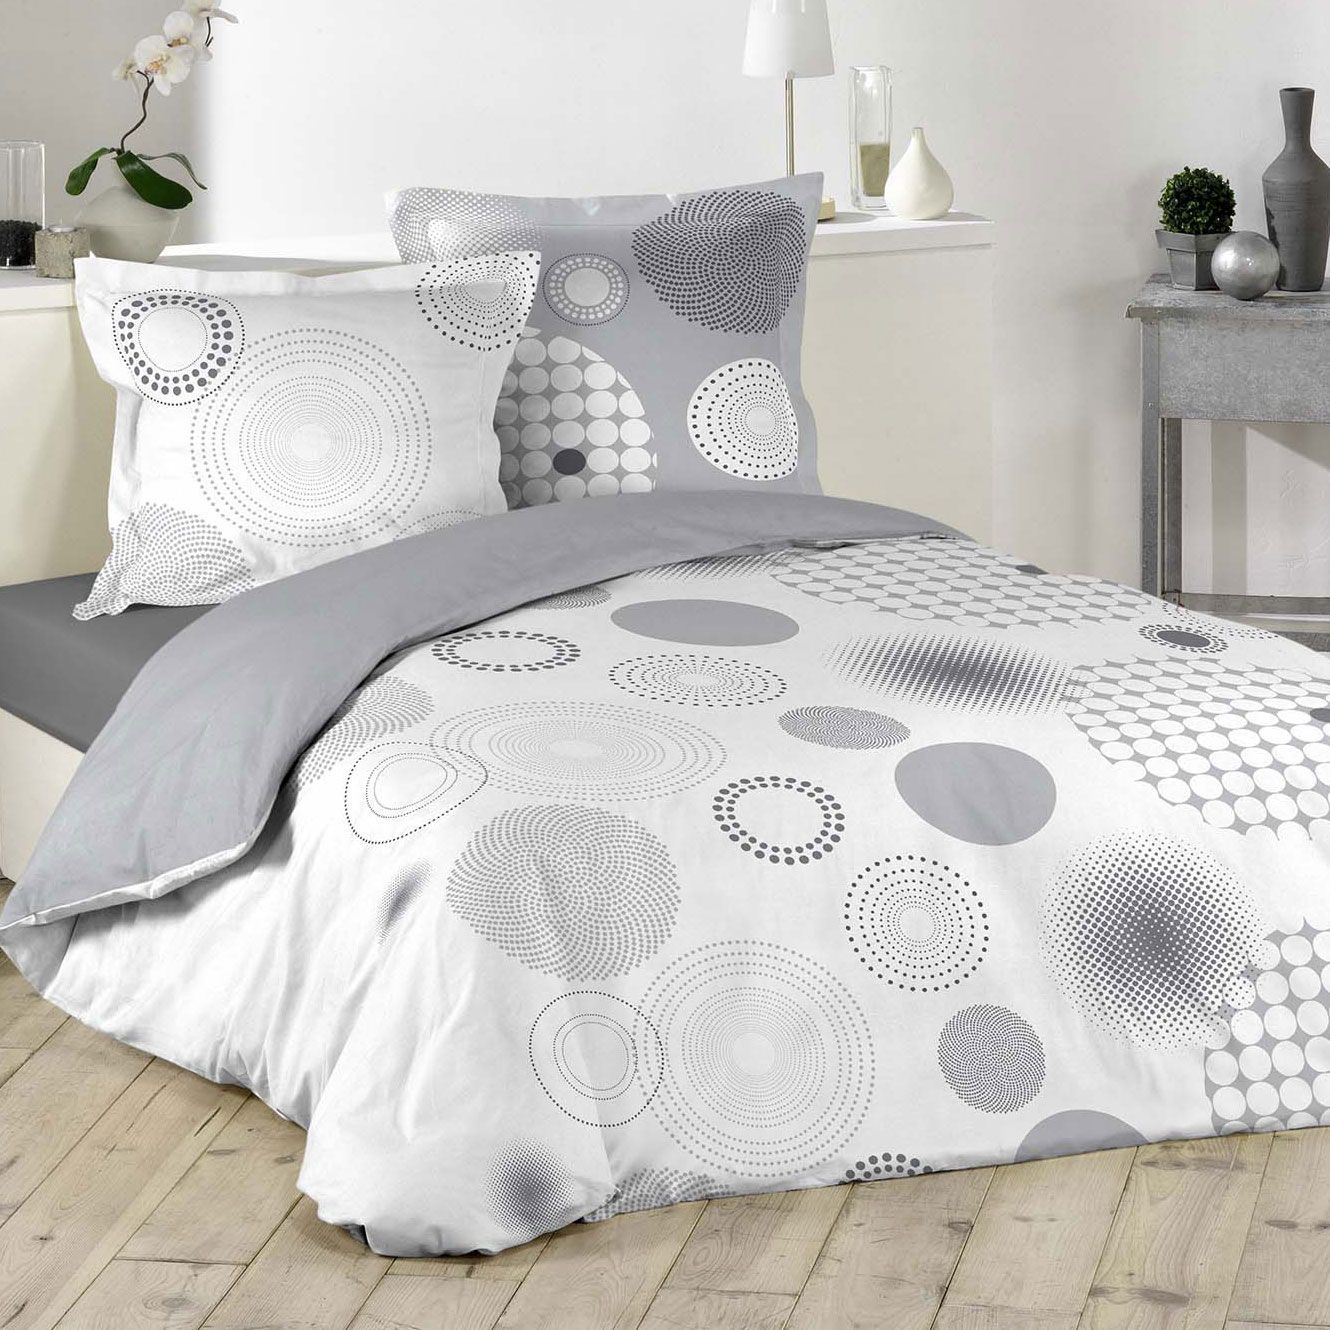 housse de couette et deux taies bulleo 100 coton 240 cm gris clair housse de couette eminza. Black Bedroom Furniture Sets. Home Design Ideas